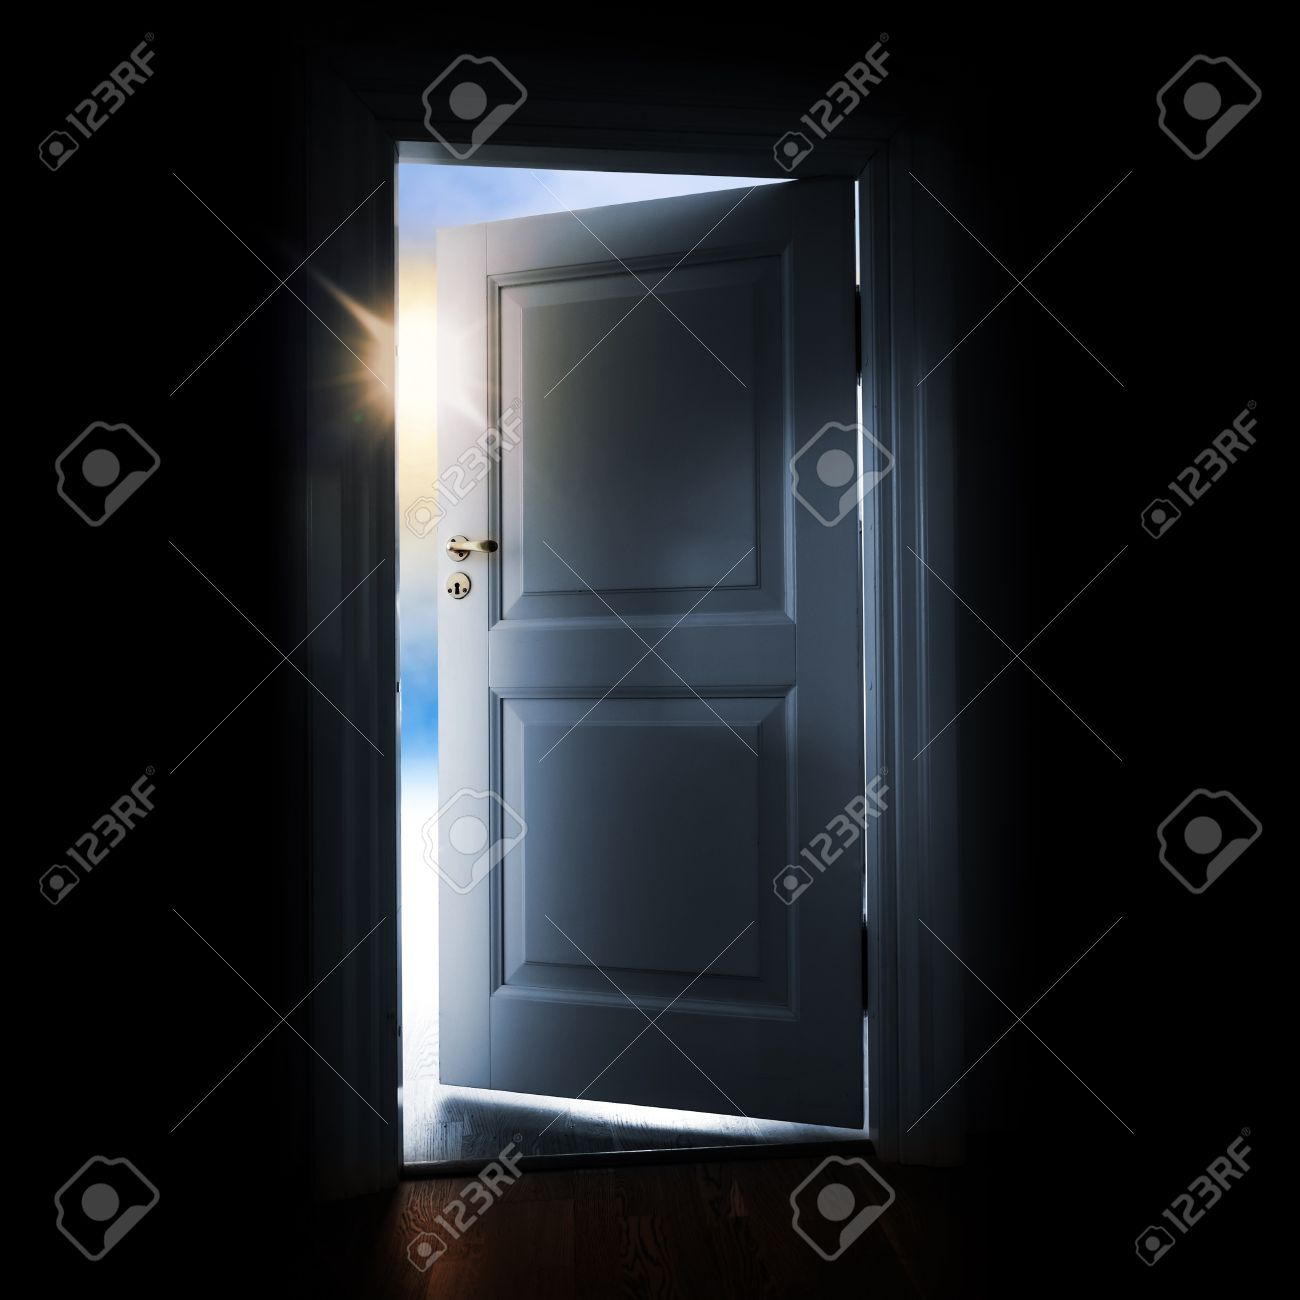 opening blue door in a dark room with shining light and sky outside stock photo opening69 light